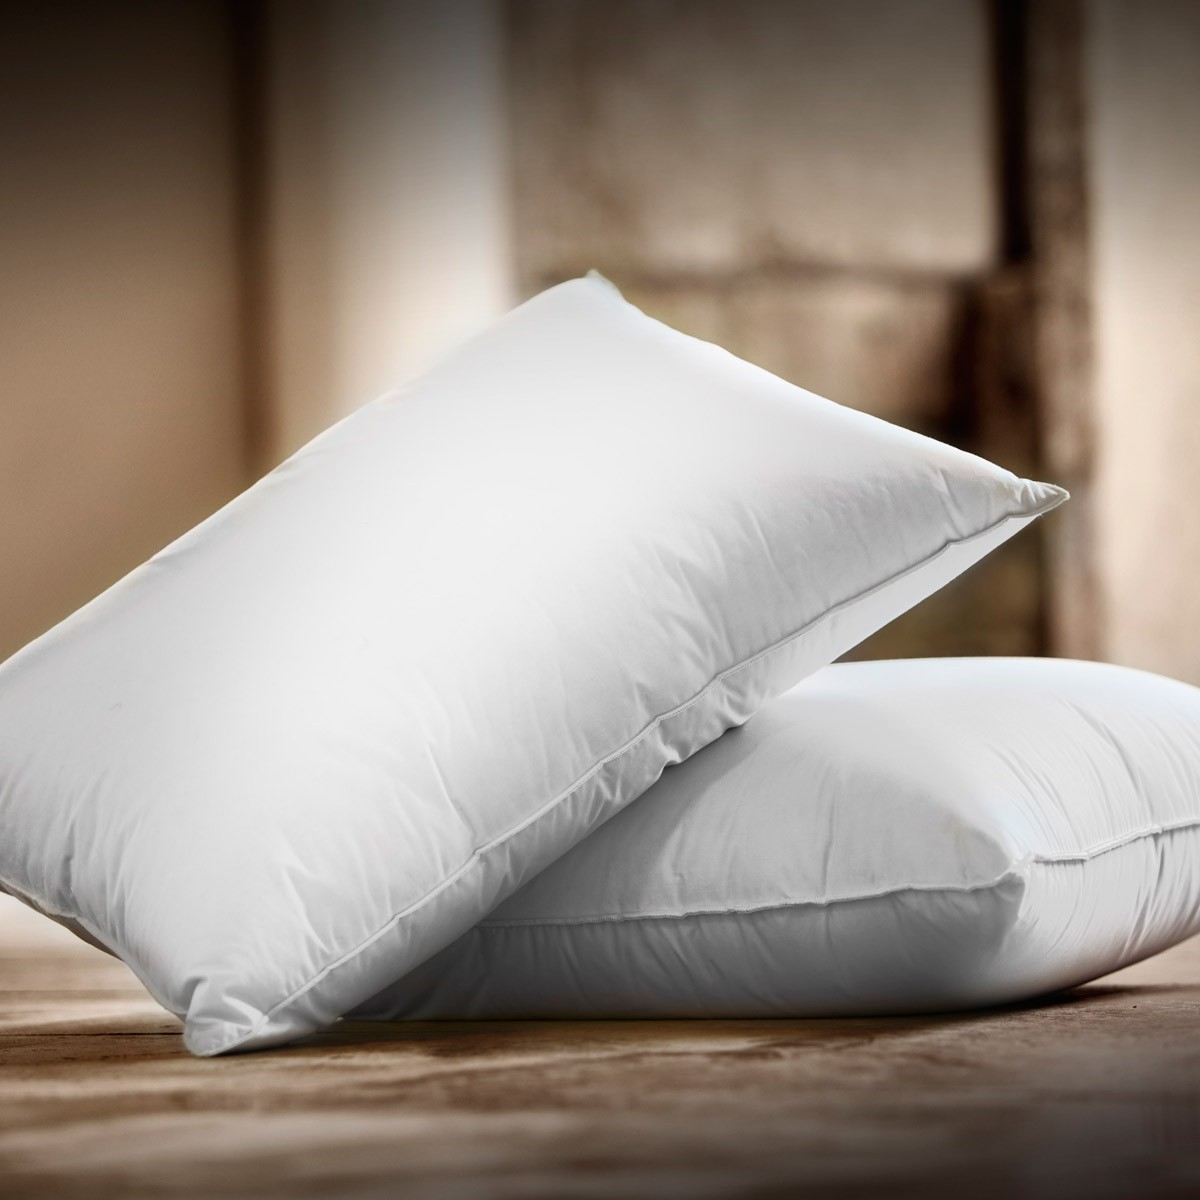 Feather firm comfort pillow luxe dumas paris for Comfort inn hotel pillows